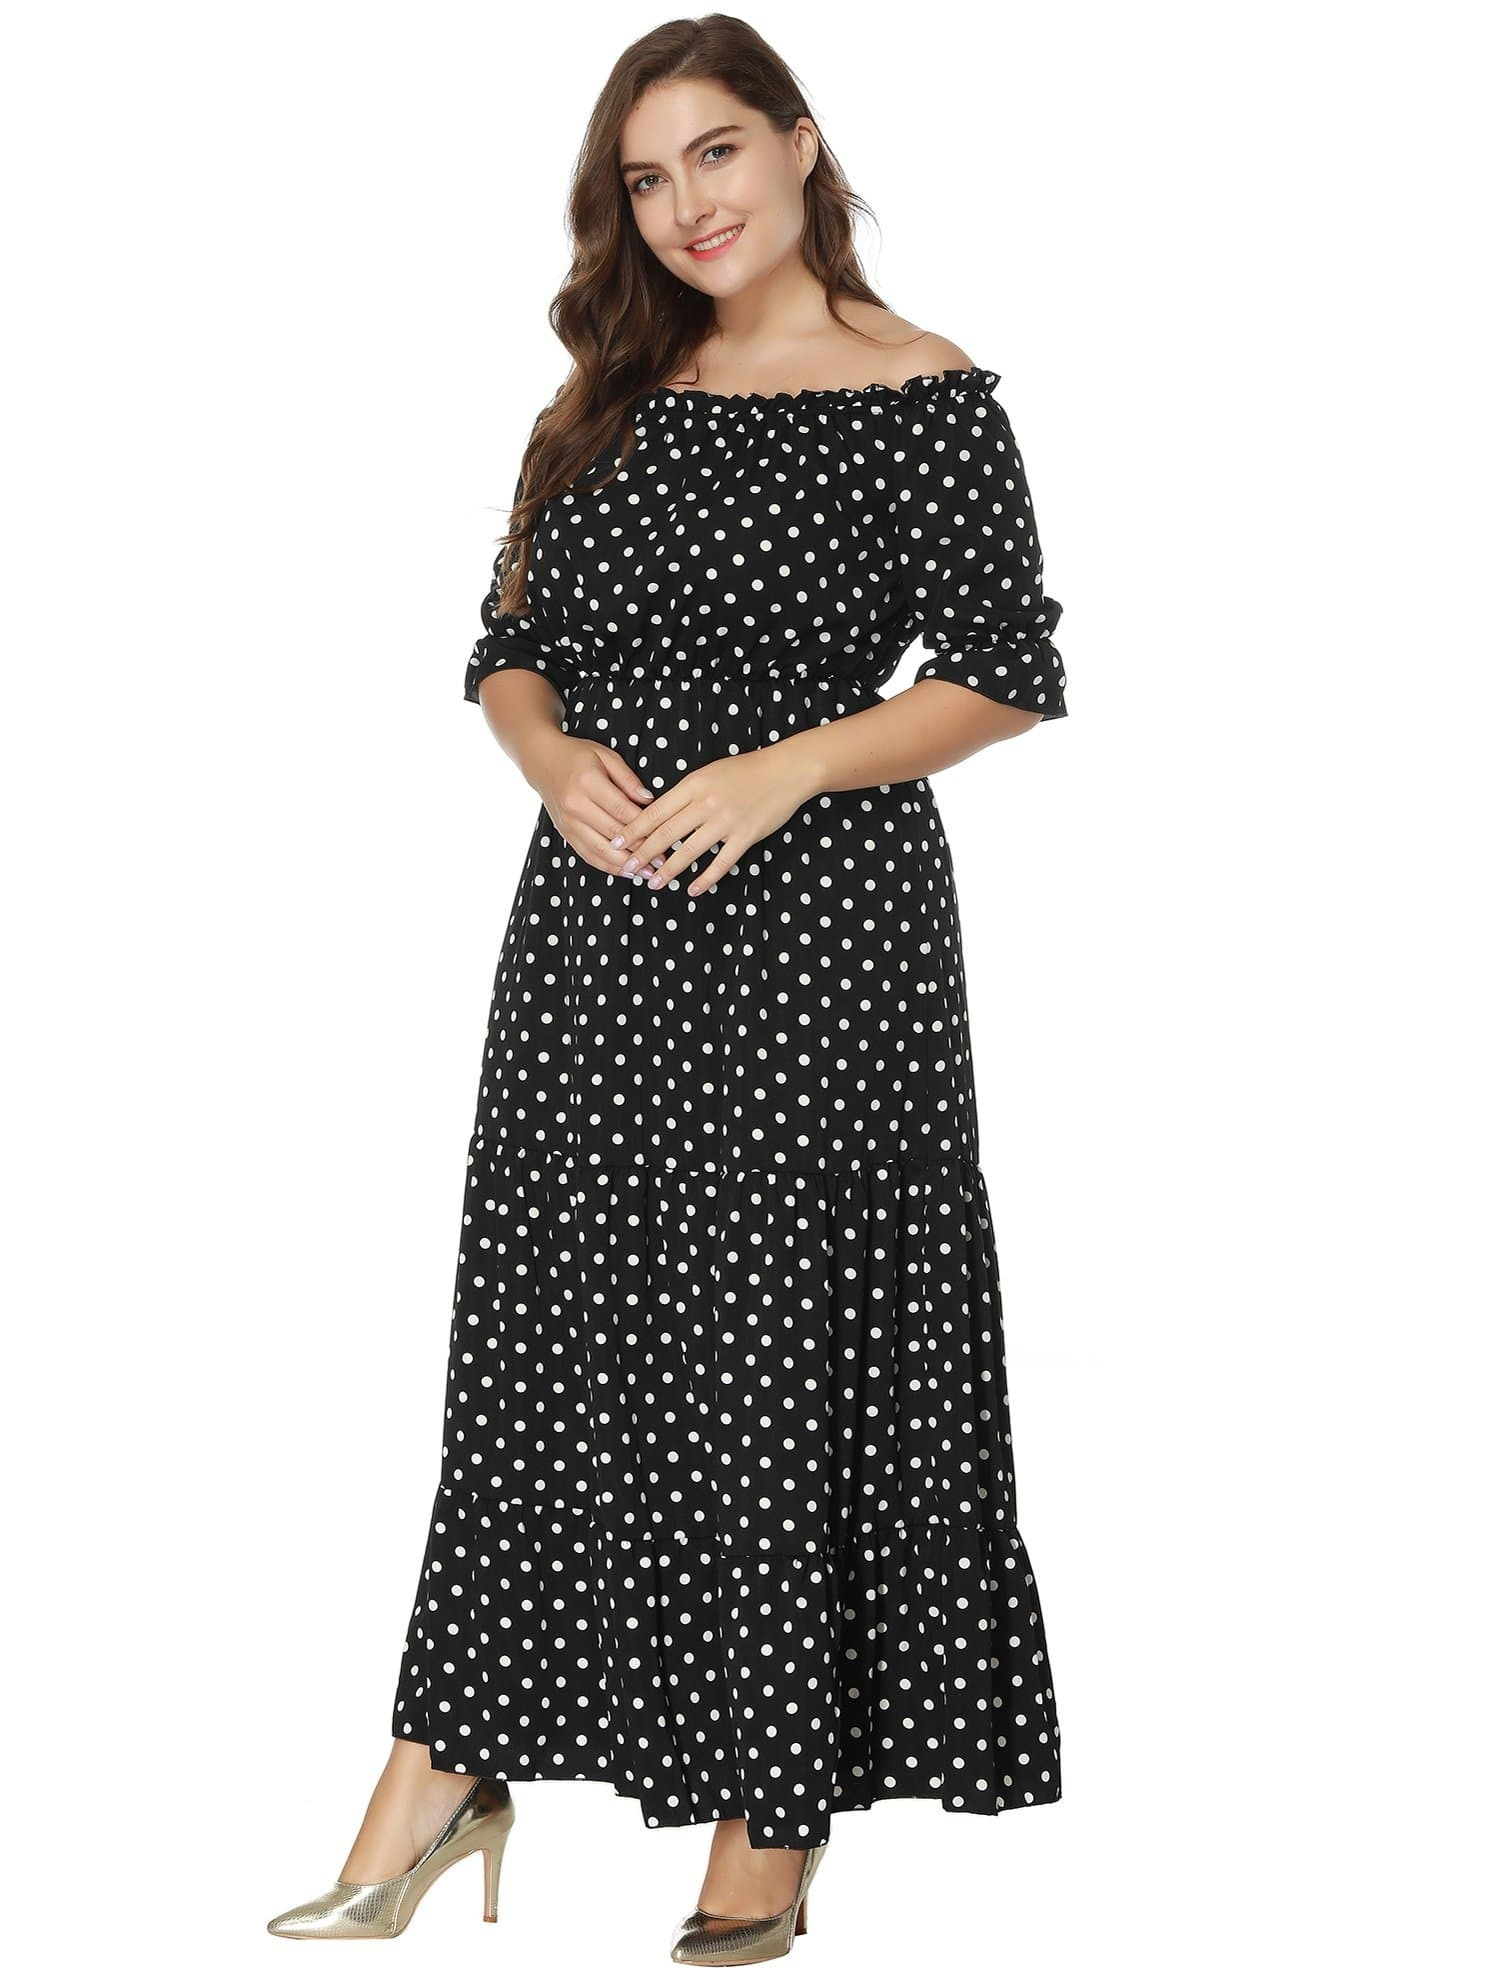 Off Shoulder Polka Dot Dress flounce one shoulder polka dot dress